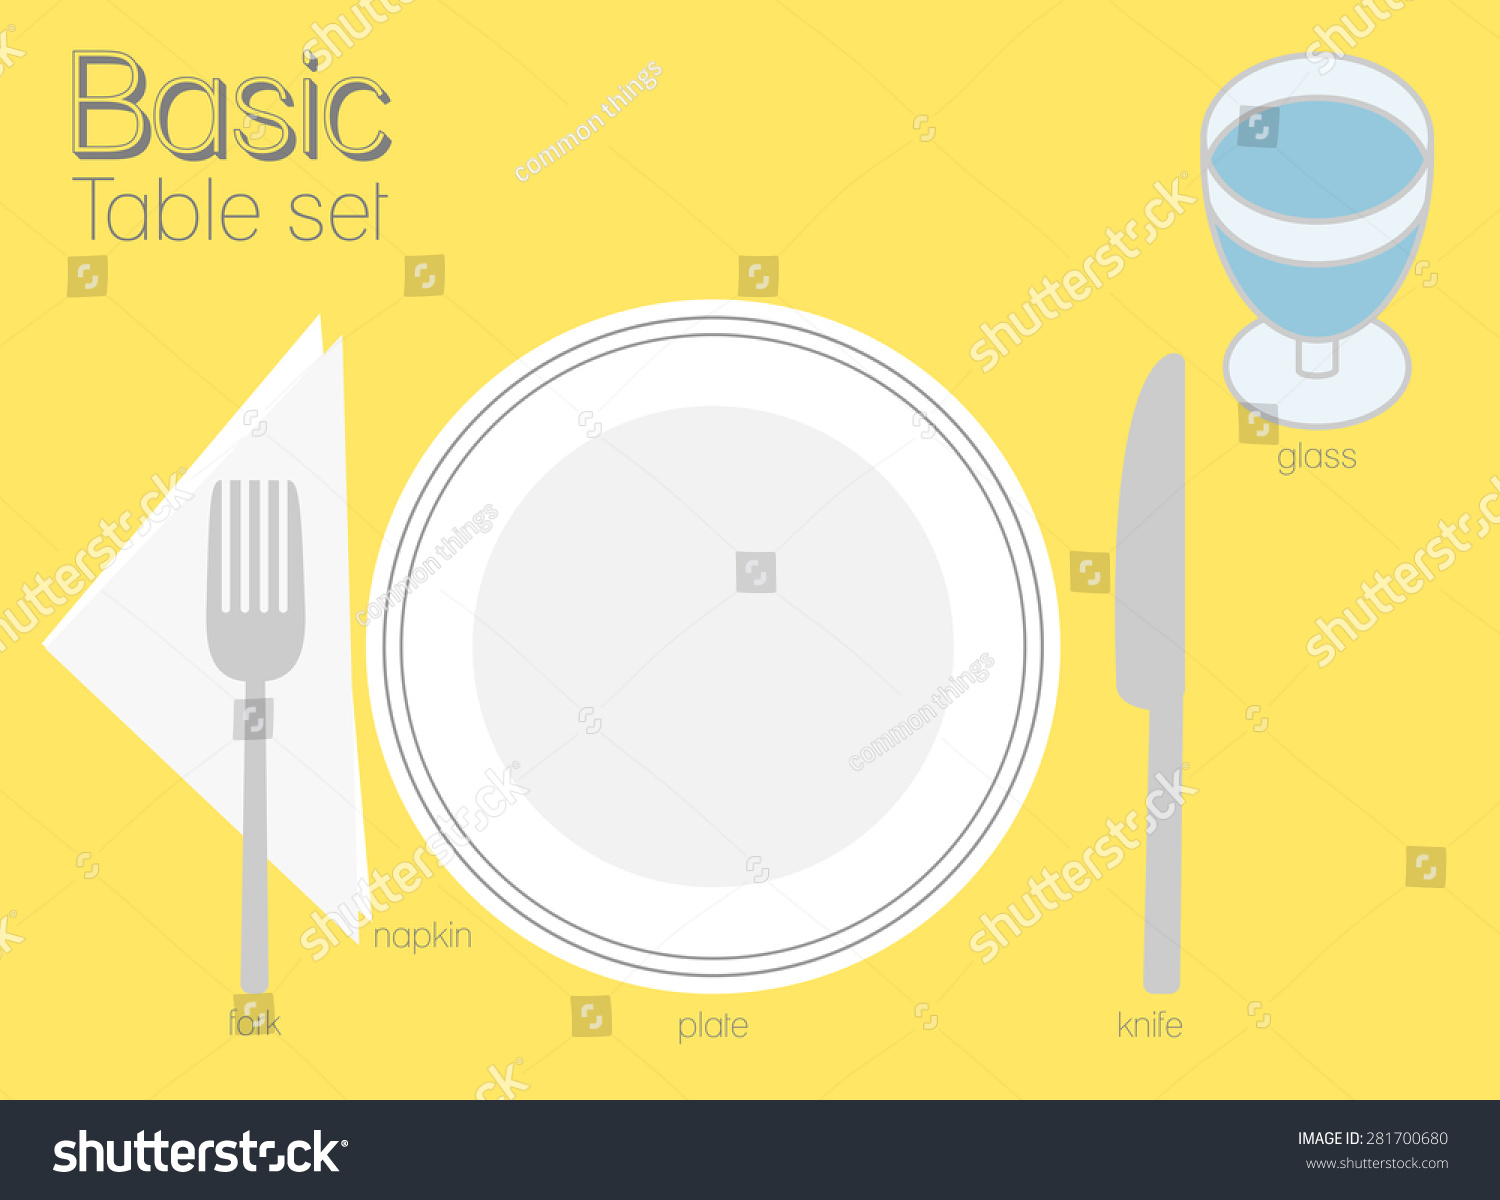 Formal dinner table setting etiquette - Basic Table Setting Common Type Of Table Setting For Western Dining